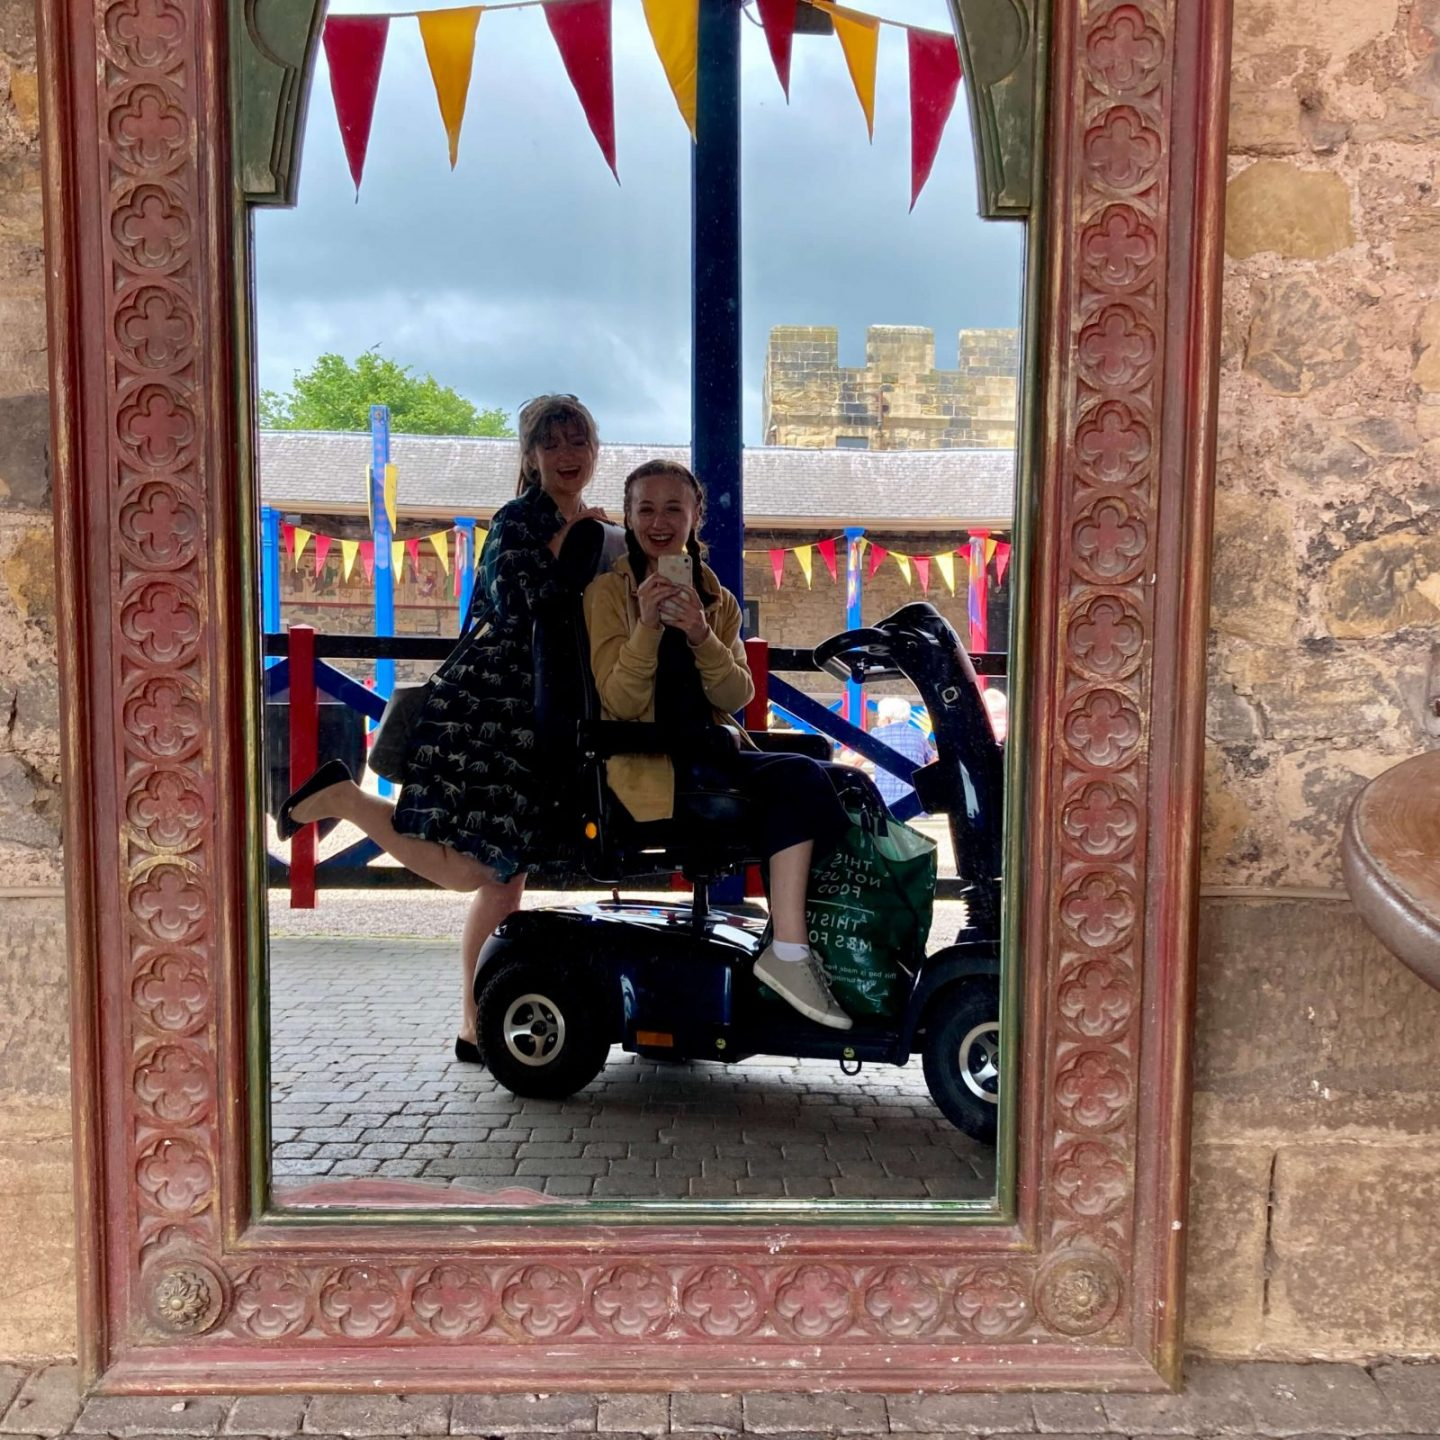 mirror selfie of pippa and izzy in medieval mirror with medieval flags and decorations visible in background. pippa is sat in mobility scooter facing the side, and izzy is posing behind her, leaning on the scooter with one leg up